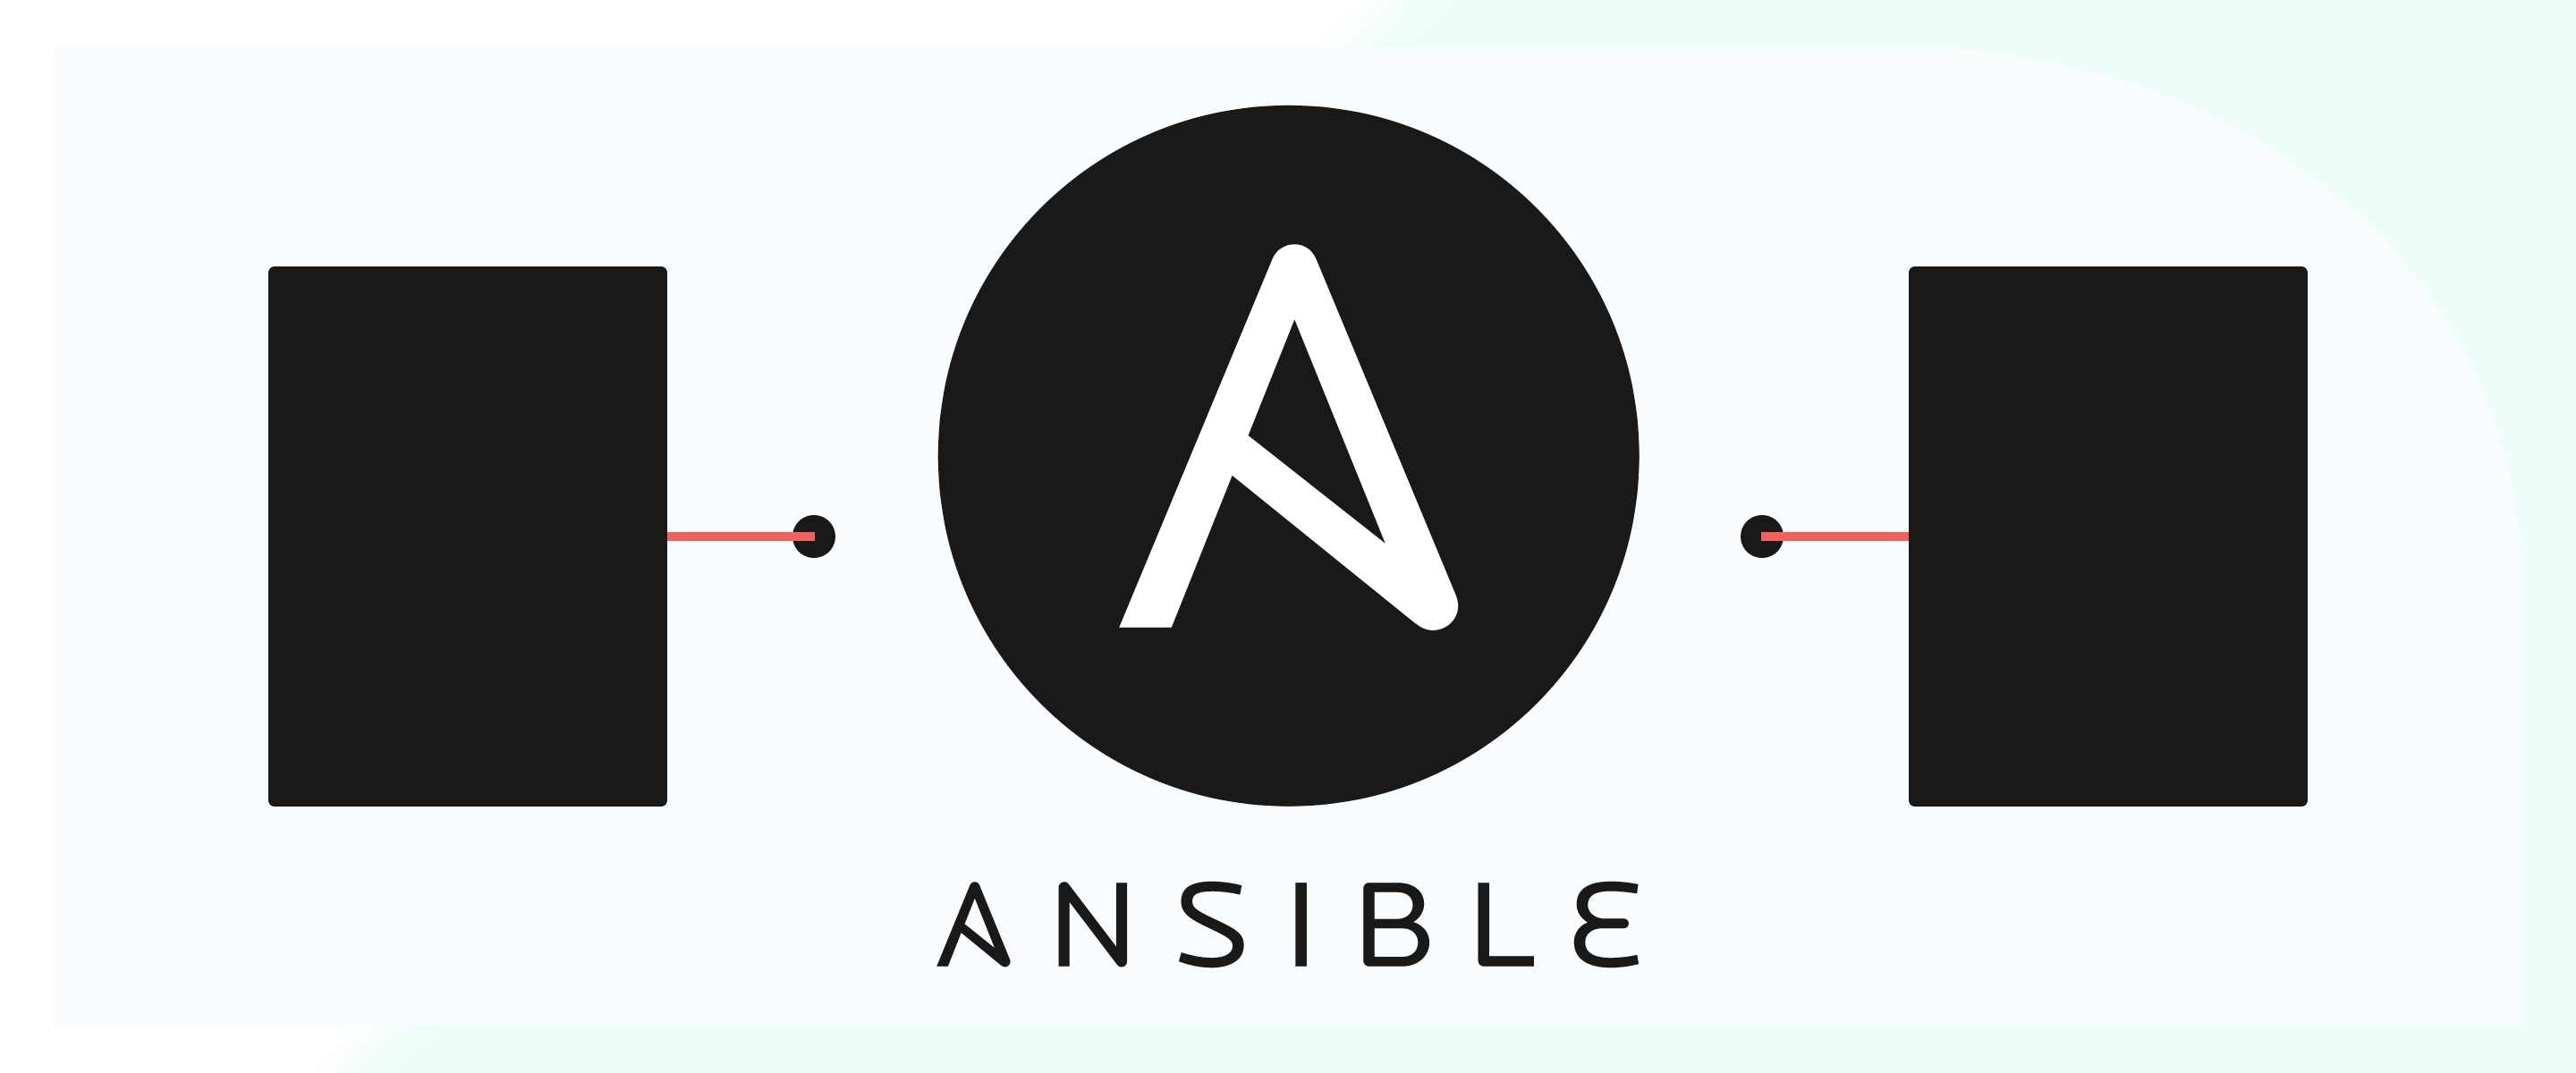 Step-by-step Ansible guide, from installation to playbooks